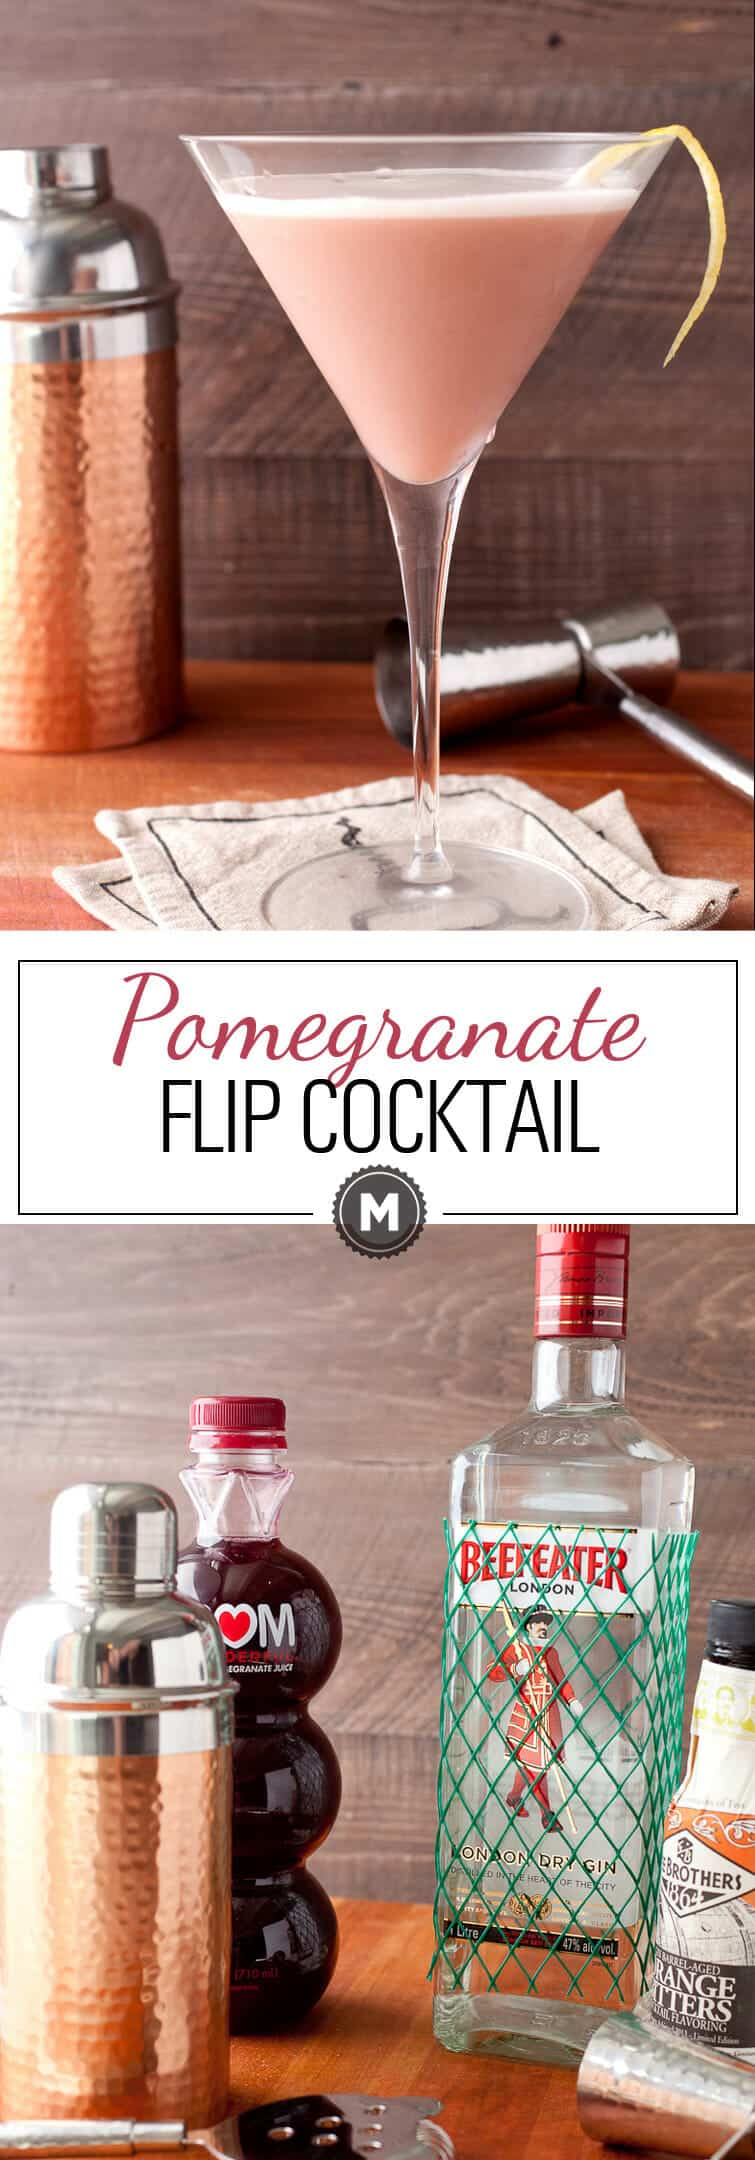 The Pomegranate Flip Cocktail: This easy cocktail is a classic but with a modern twist! It's perfect for a hot summer day: light and refreshing! The secret ingredient to a real flip cocktail: EGG WHITE! Don't skip it! Click through to learn how to make it right! | macheesmo.com